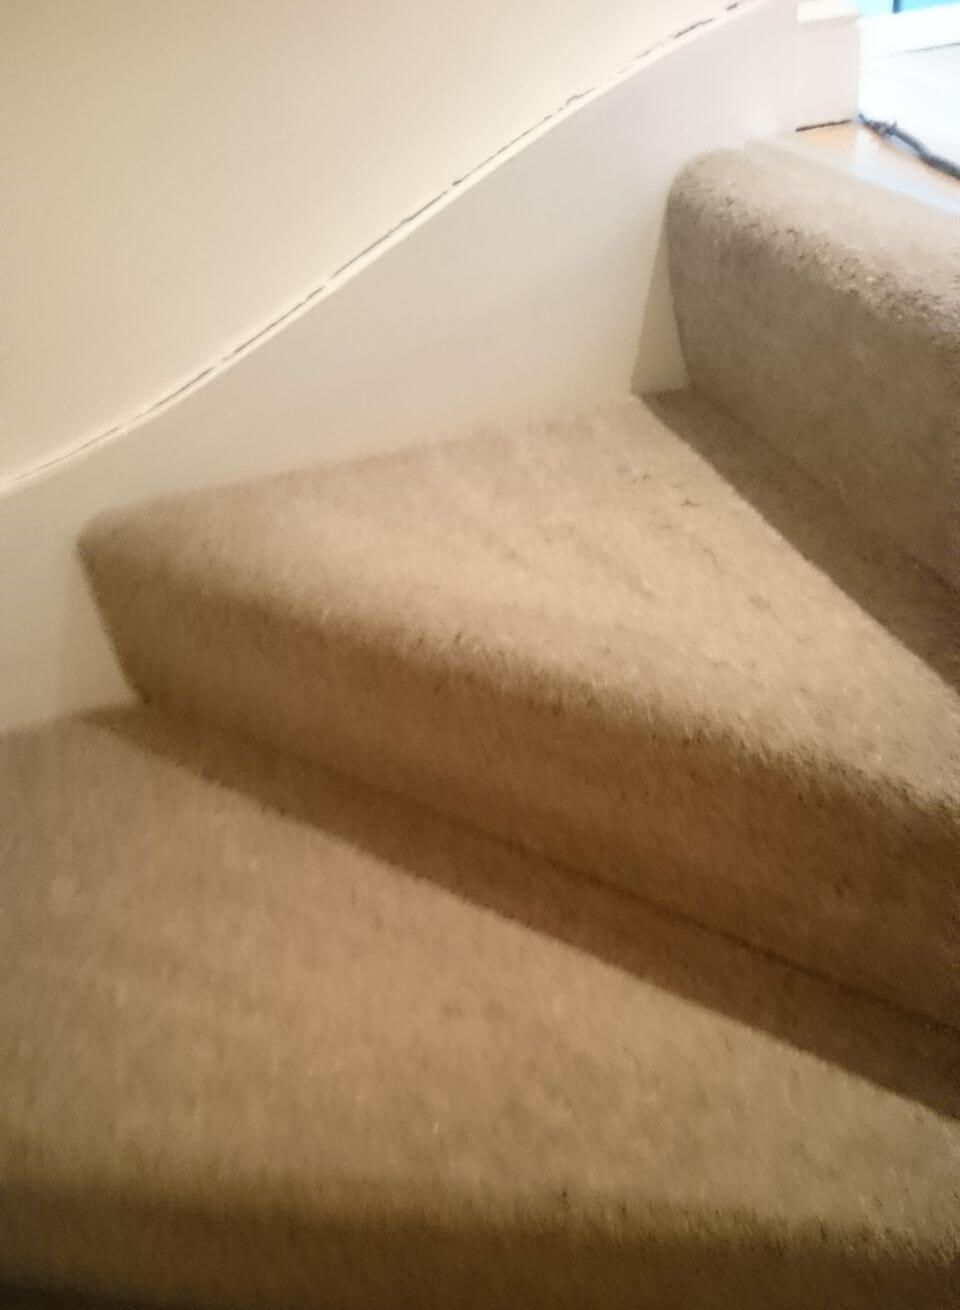 cleaning a carpet stain Primrose Hill